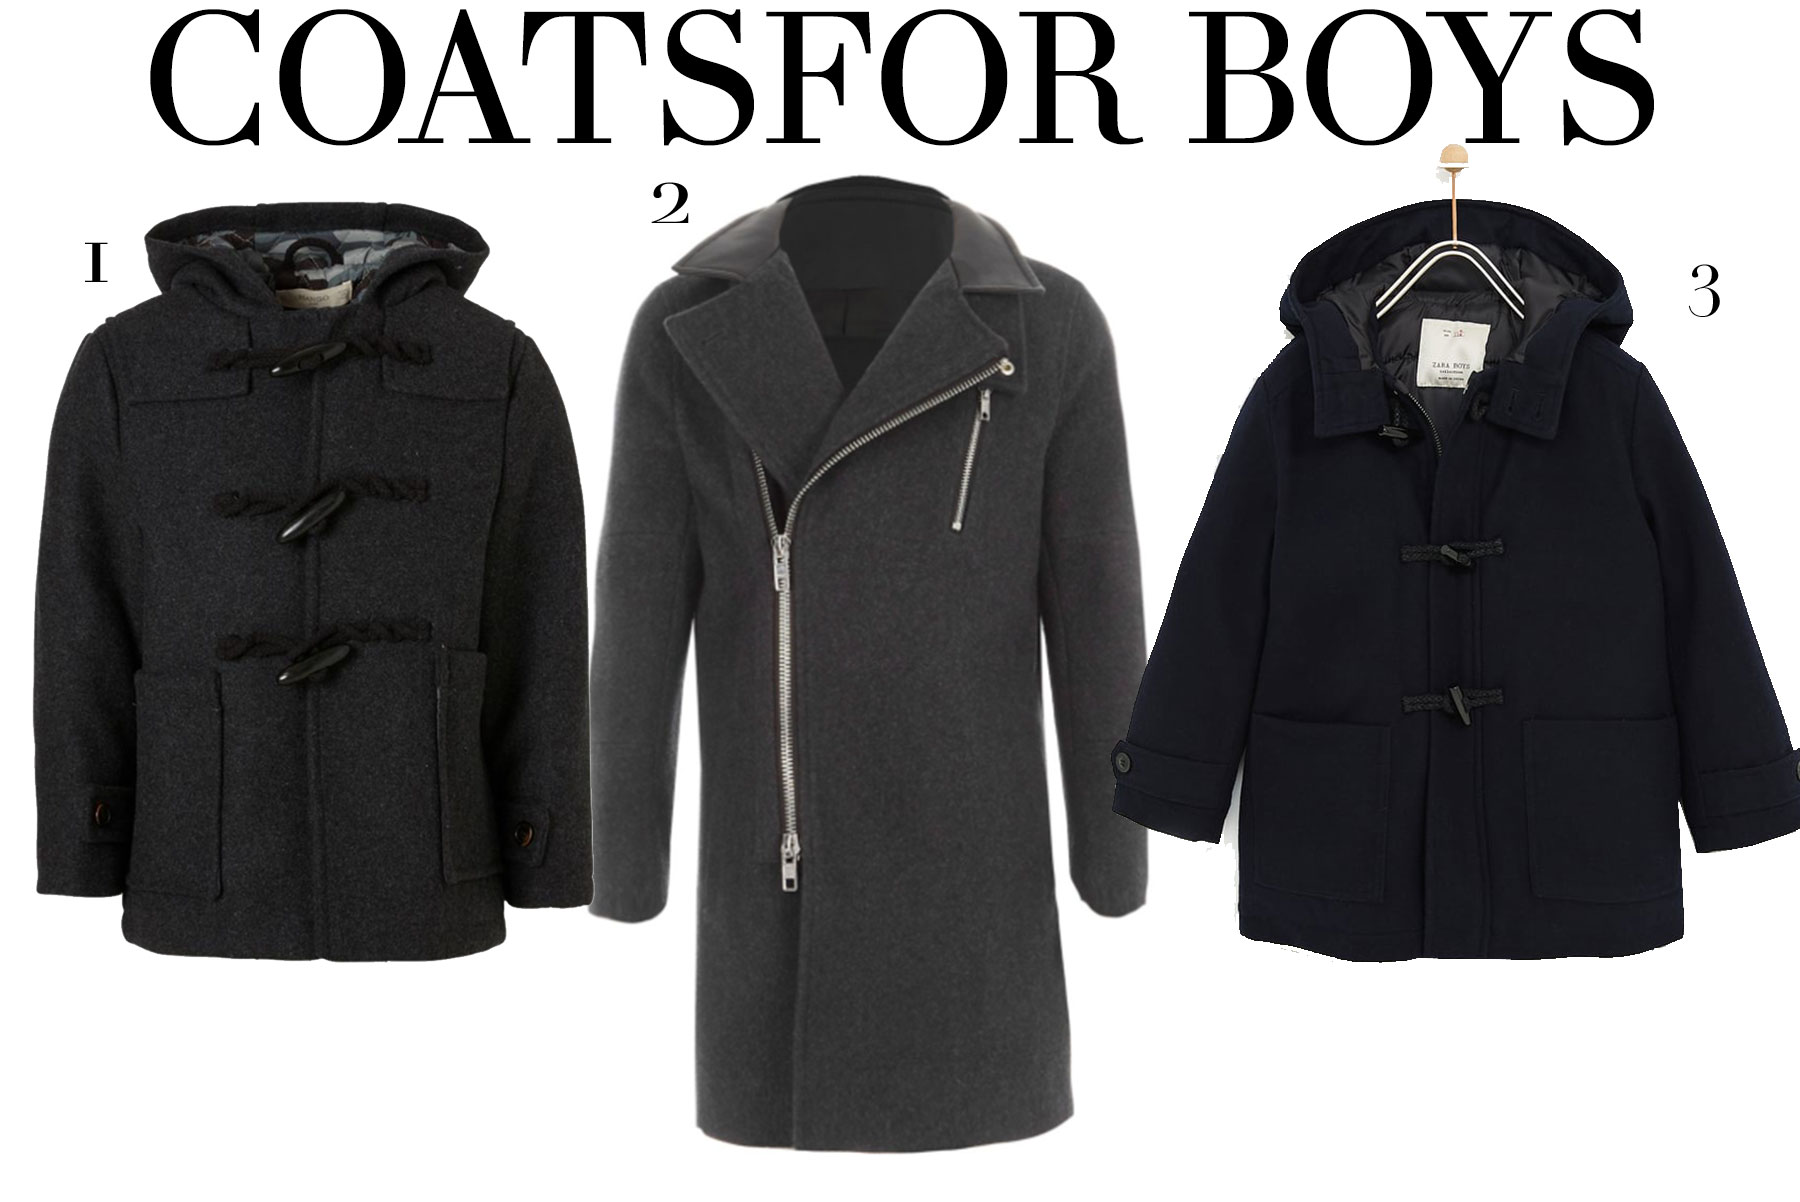 Party-Proof-Outfits-NYE-Sanne-van-Gestel-The-Mom-coats-for-boys